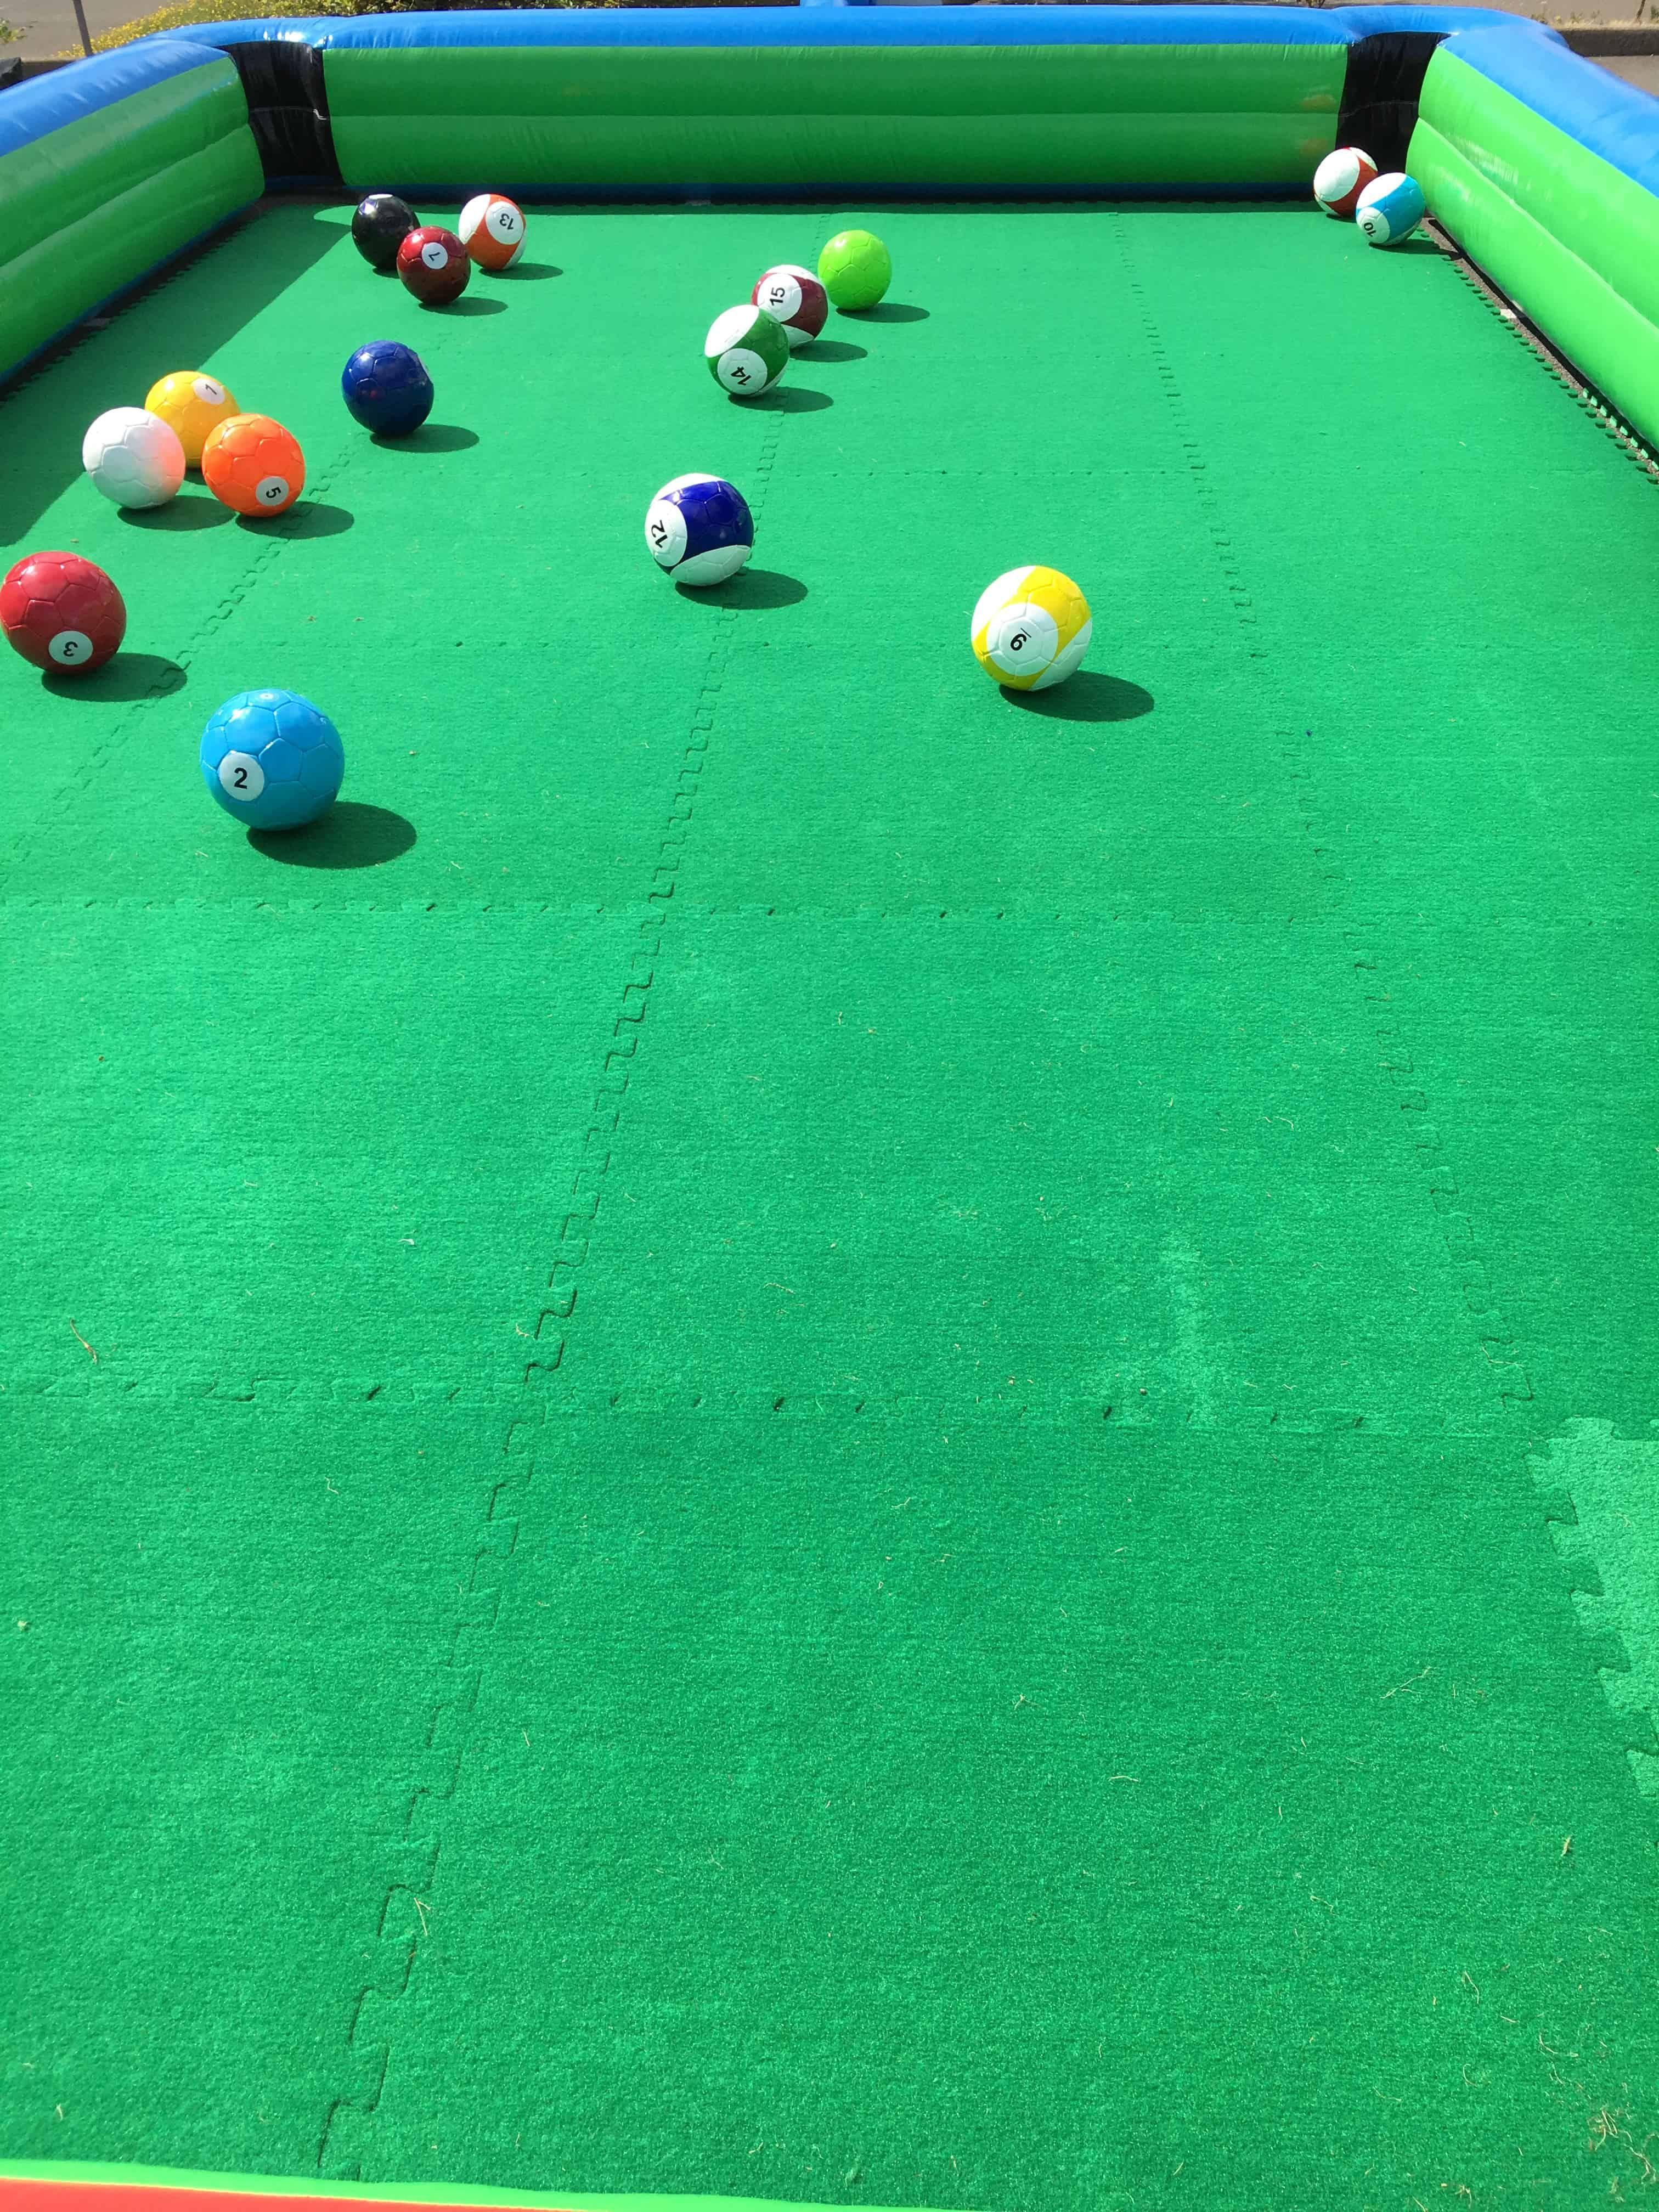 How Long Is A Football Pitch >> Foot Pool - Inflatable Football Sized Pool Table Game Hire